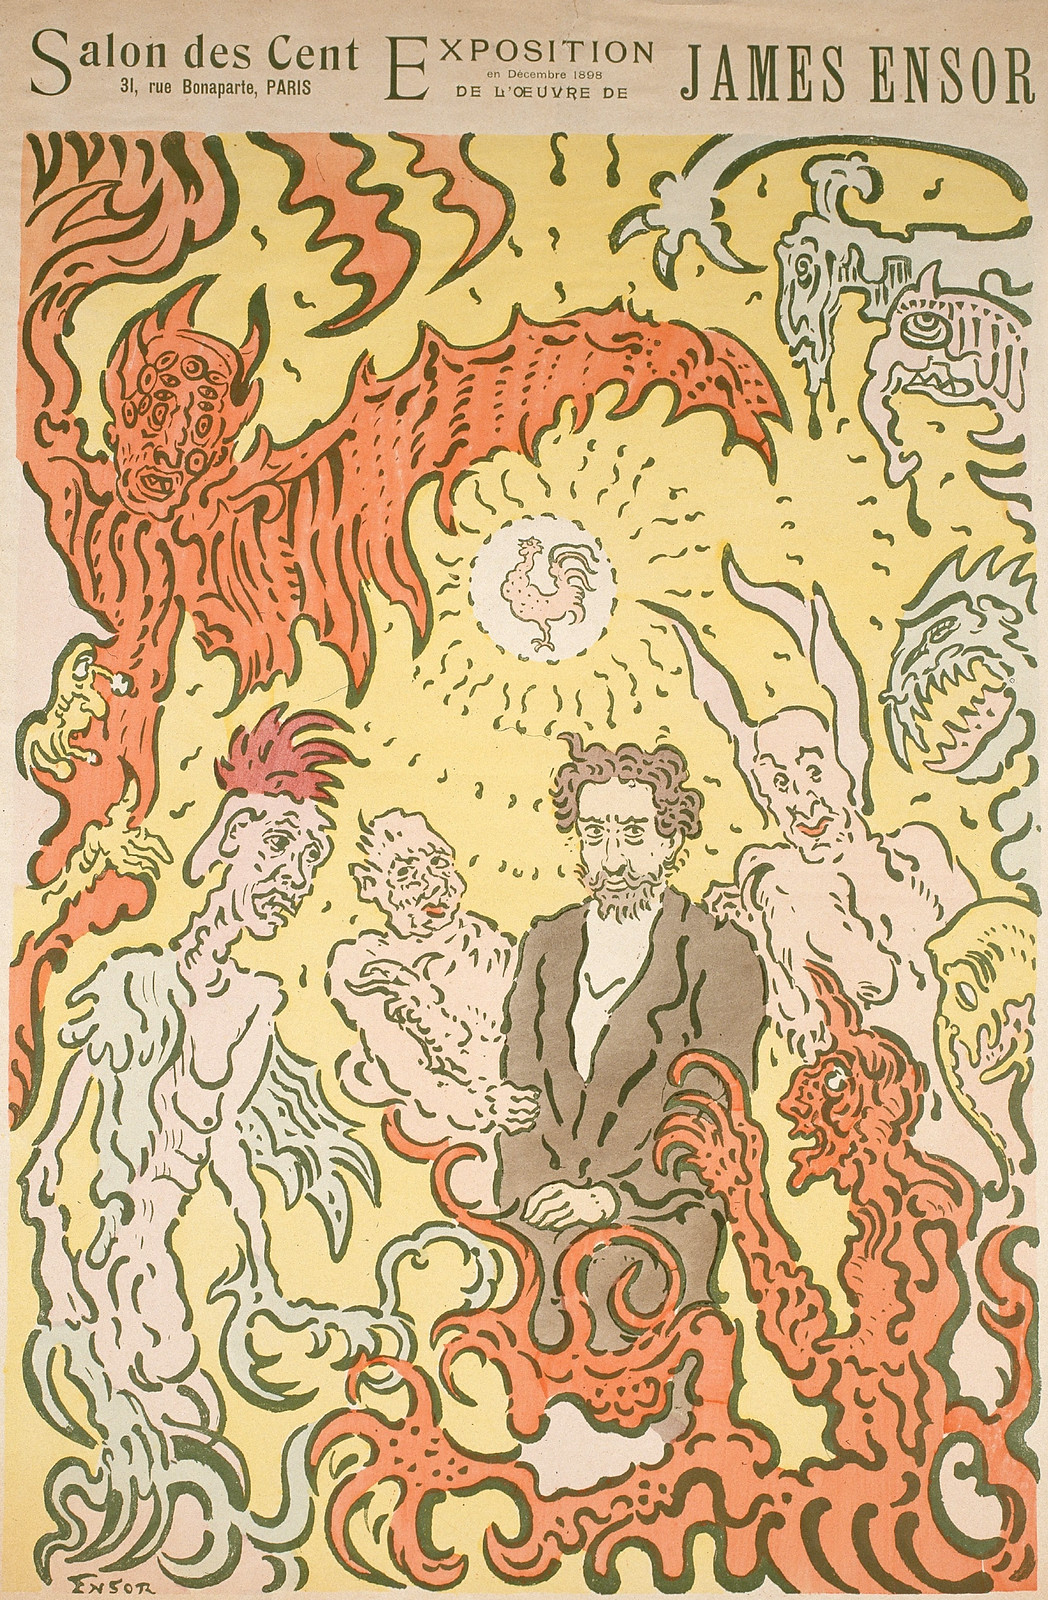 Monster brains james ensor 1860 1949 for Salon exposition